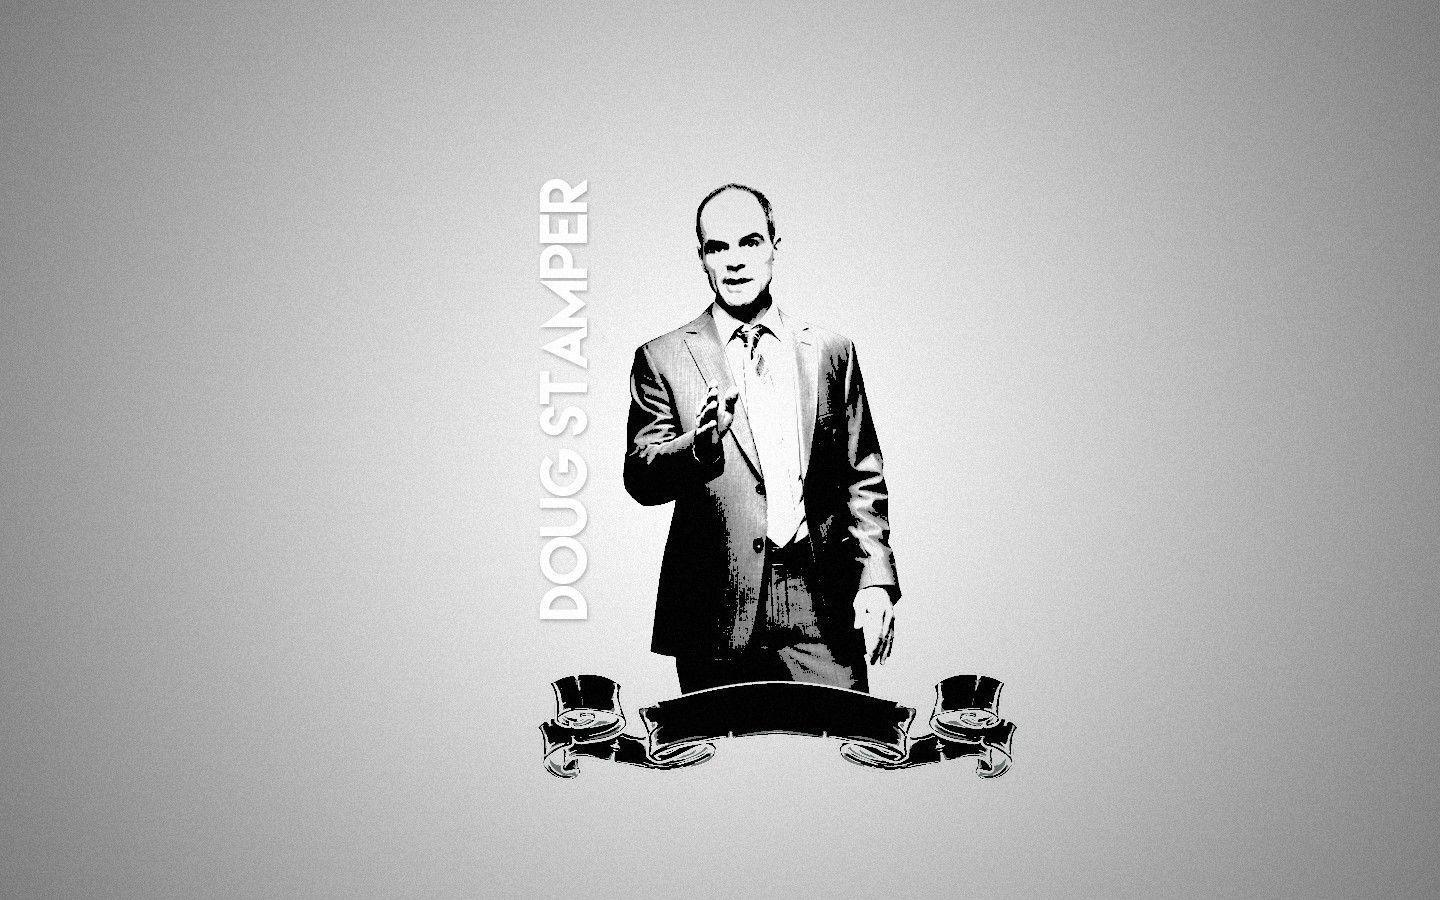 doug stamper house of cards Wallpapers HD / Desktop and Mobile